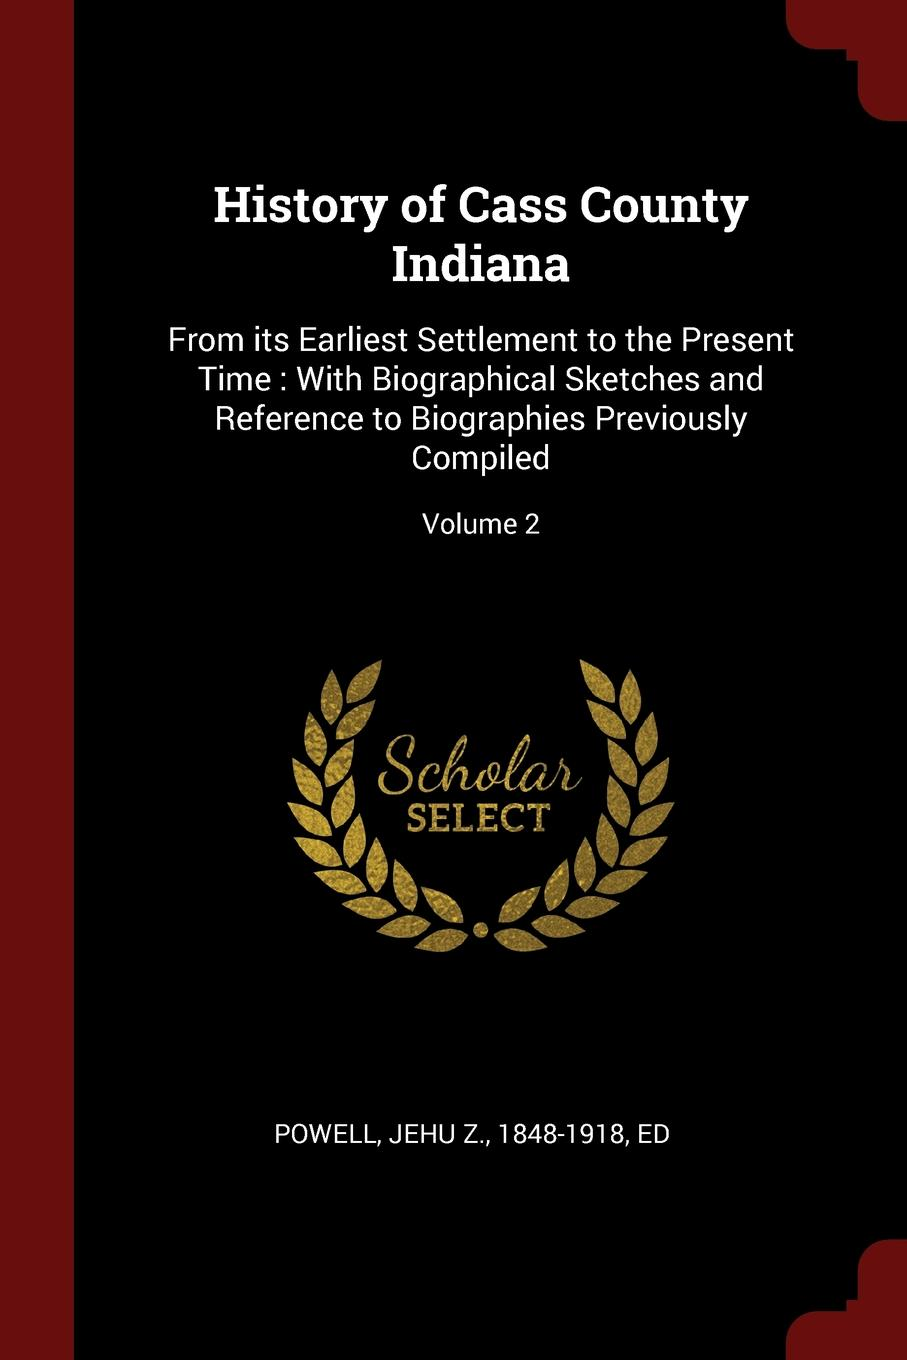 History of Cass County Indiana. From its Earliest Settlement to the Present Time : With Biographical Sketches and Reference to Biographies Previously Compiled; Volume 2 charles richard tuttle the centennial northwest an illustrated history of the northwest being a full and complete civil political and military history of this great section of the united states from its earliest settlement to the present time